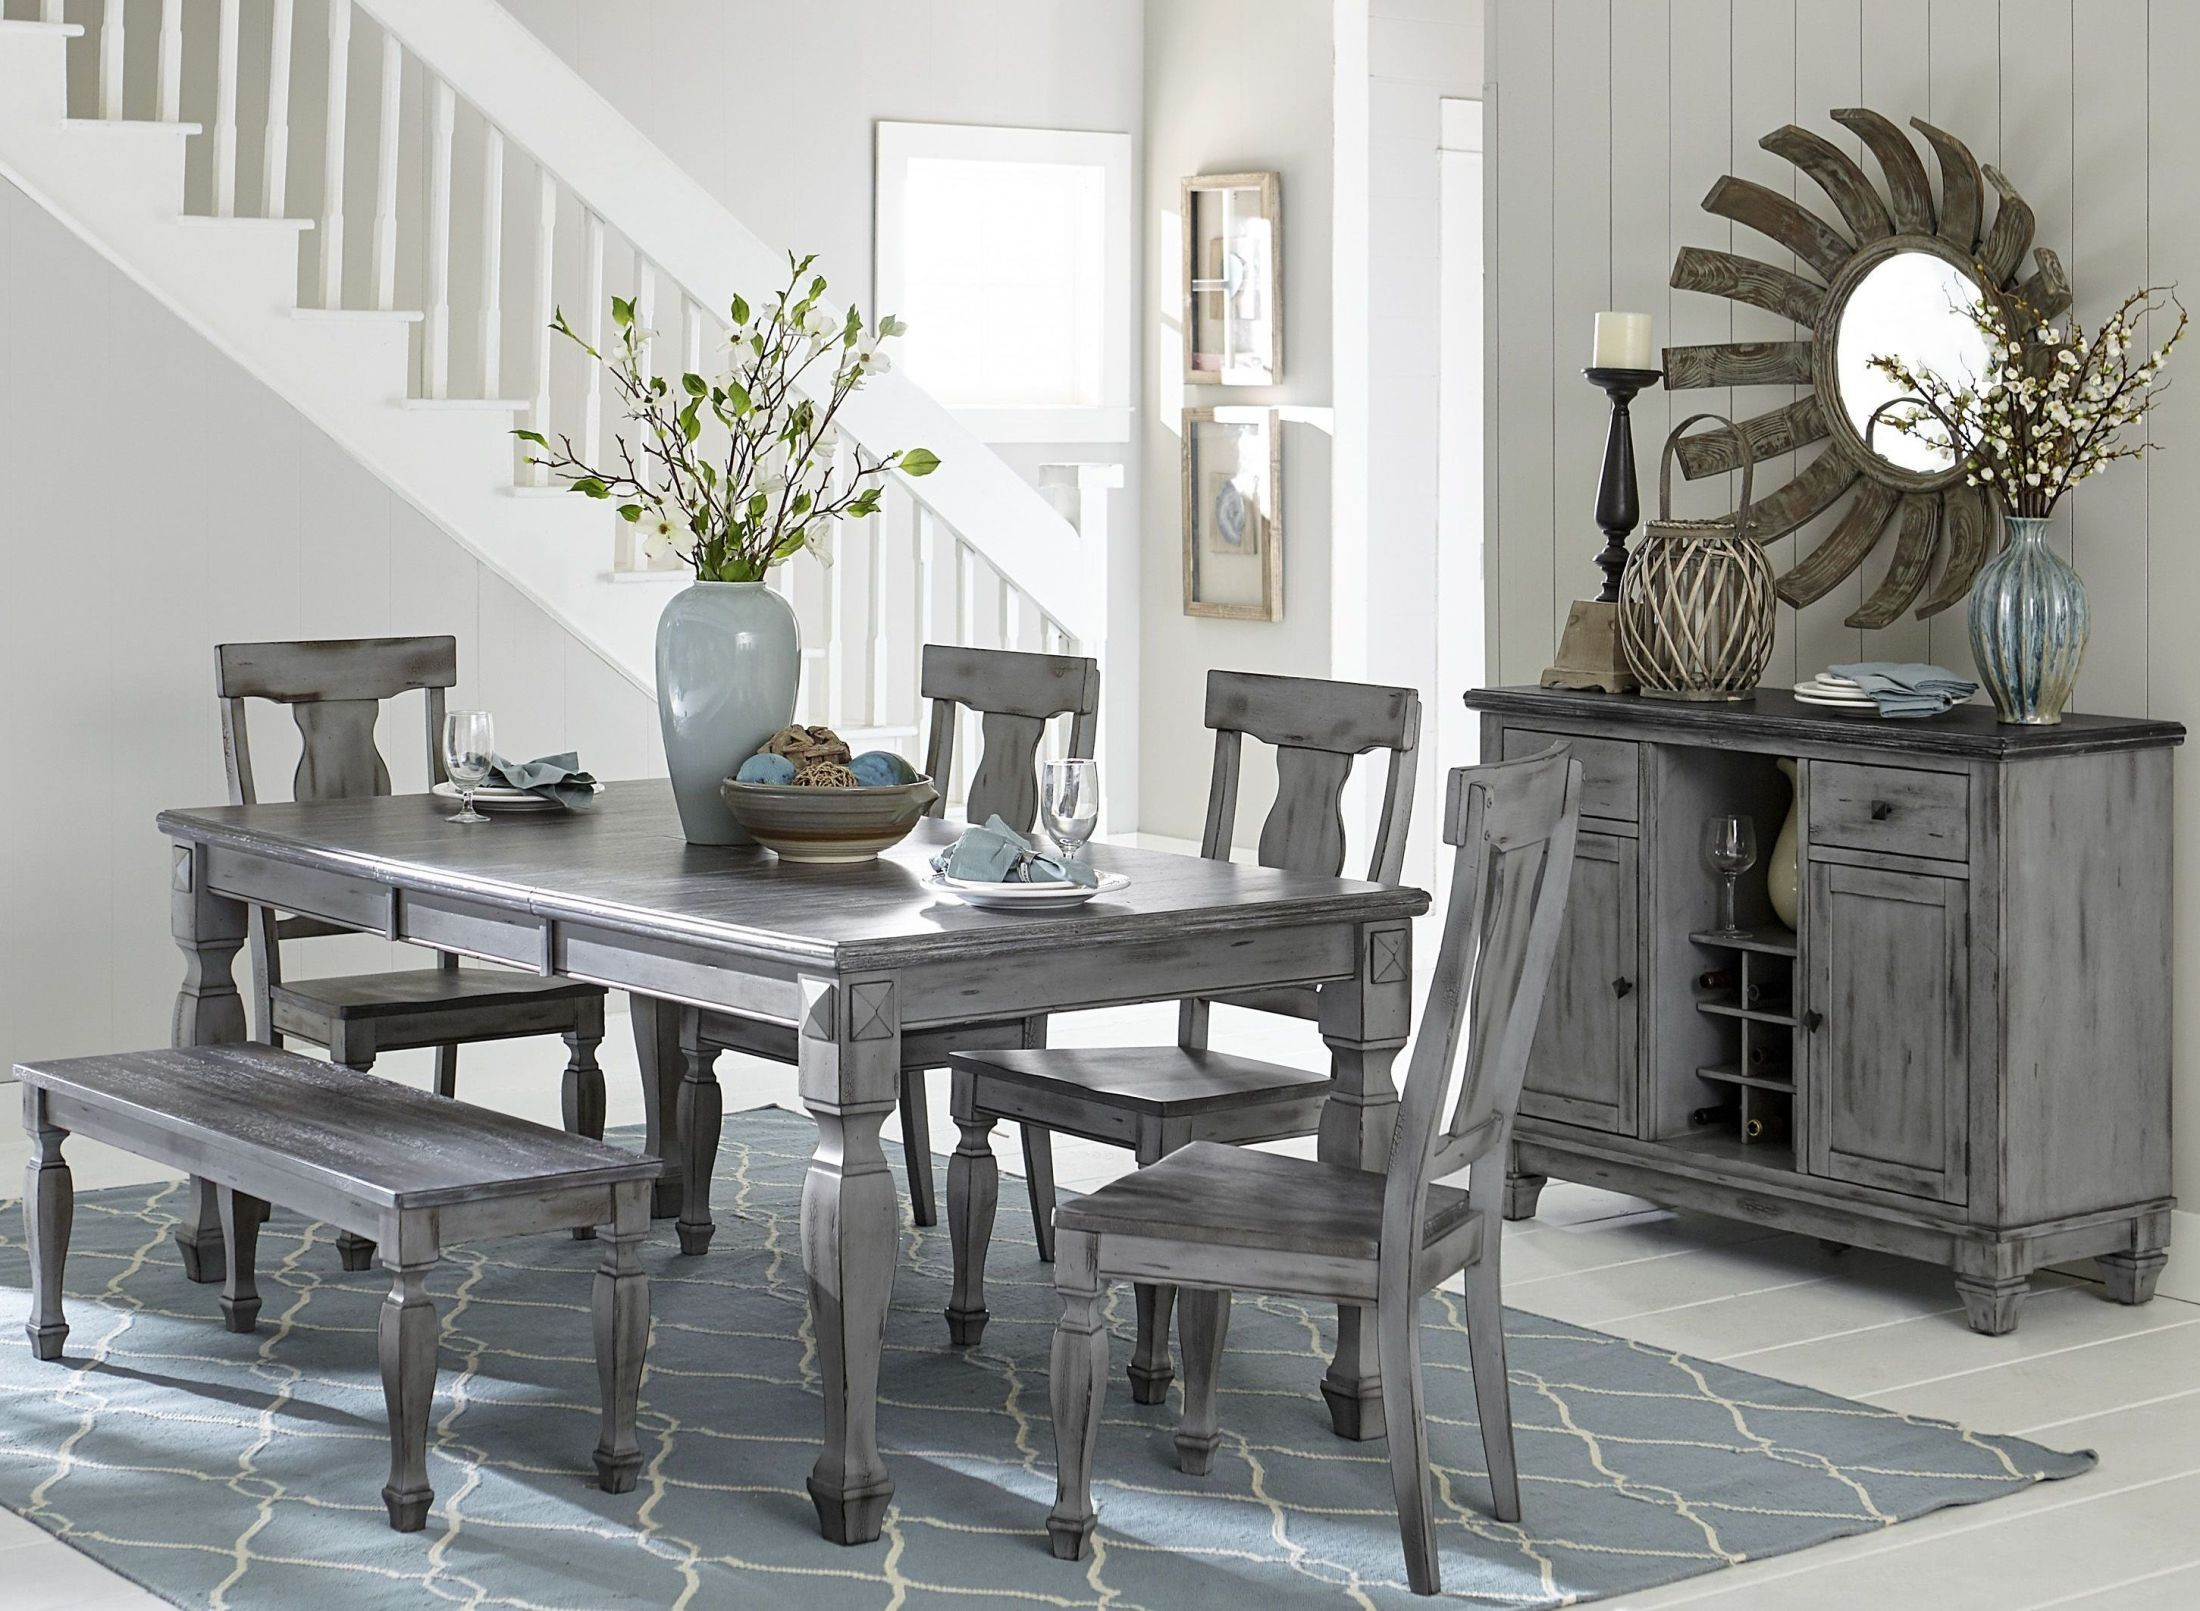 Fulbright Gray Rub Through Extendable Dining Room Set From Homelegance |  Coleman Furniture